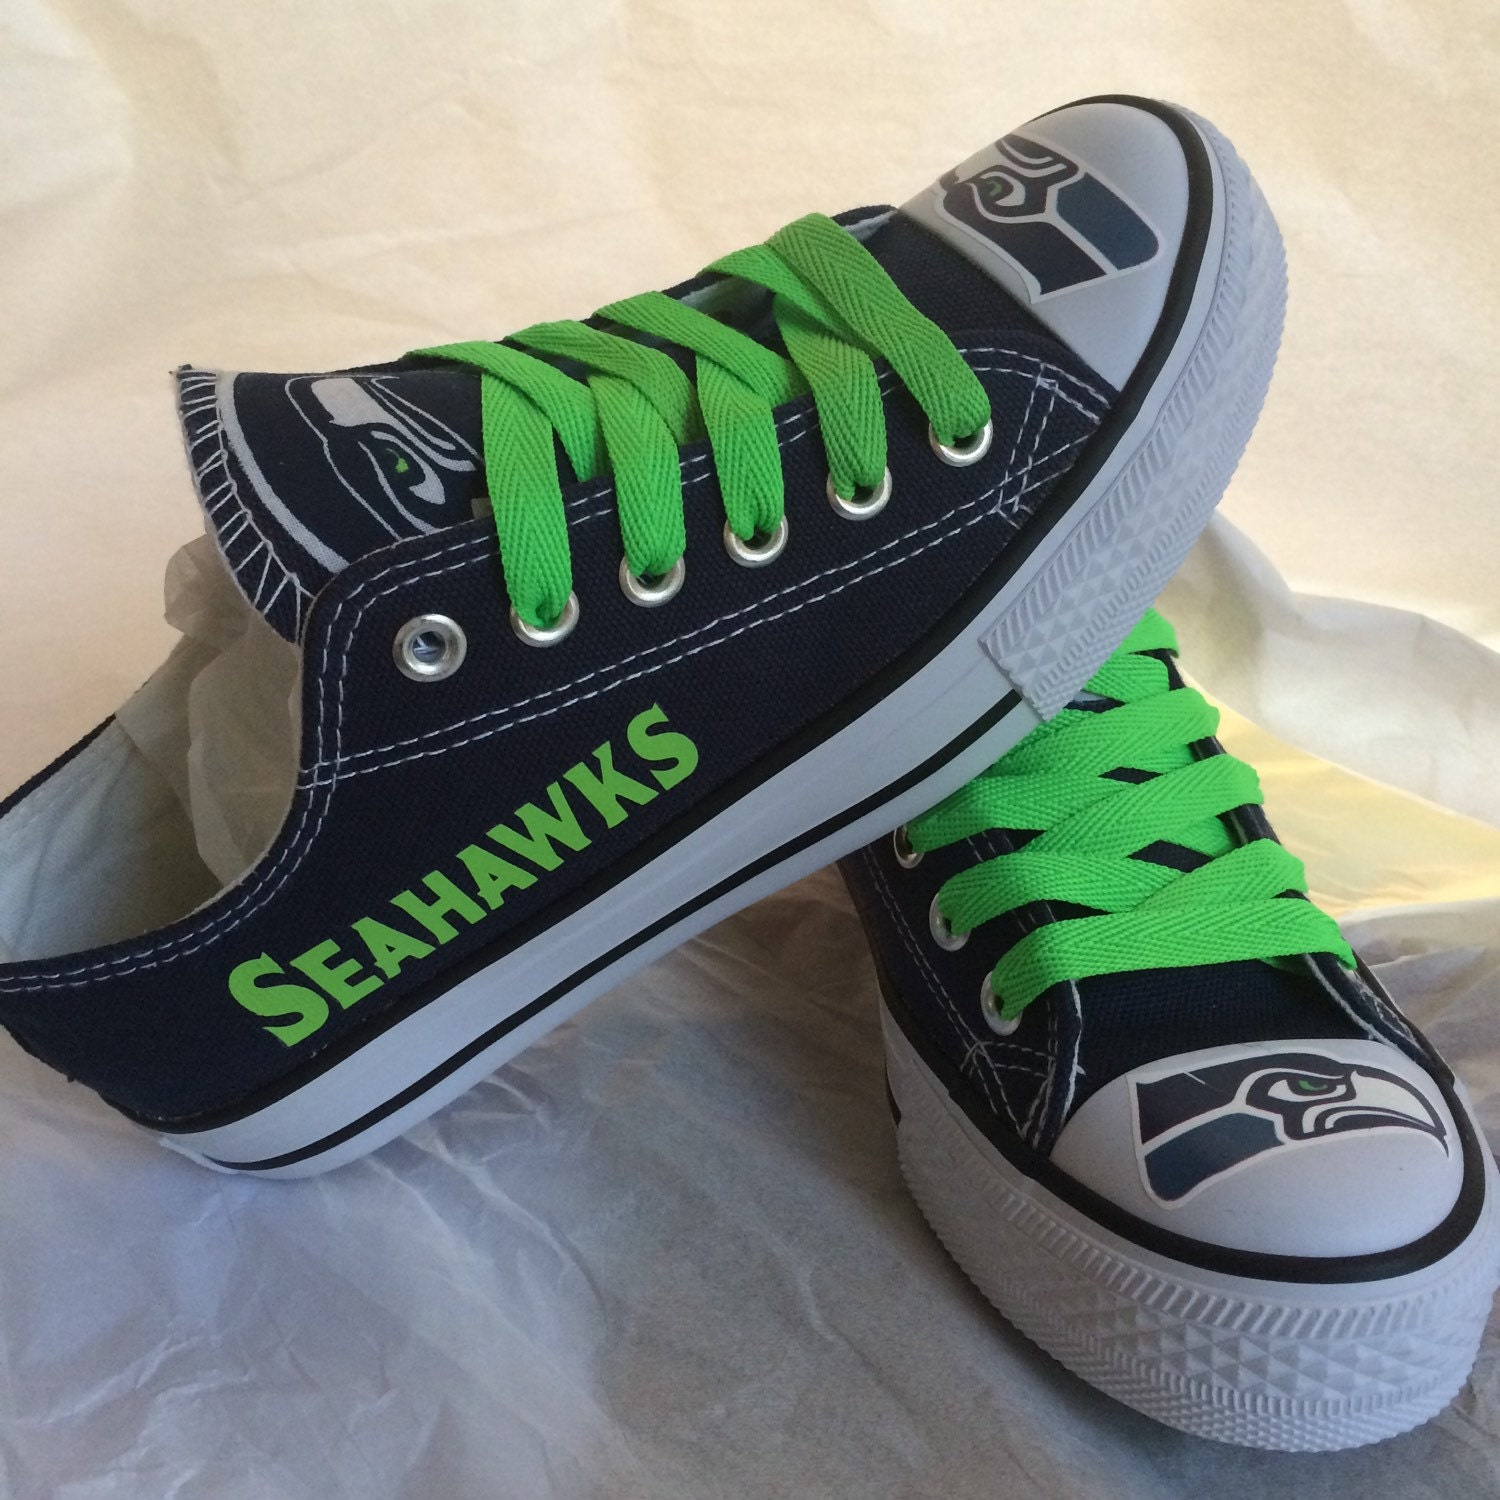 Seahawks Shoes Jordans